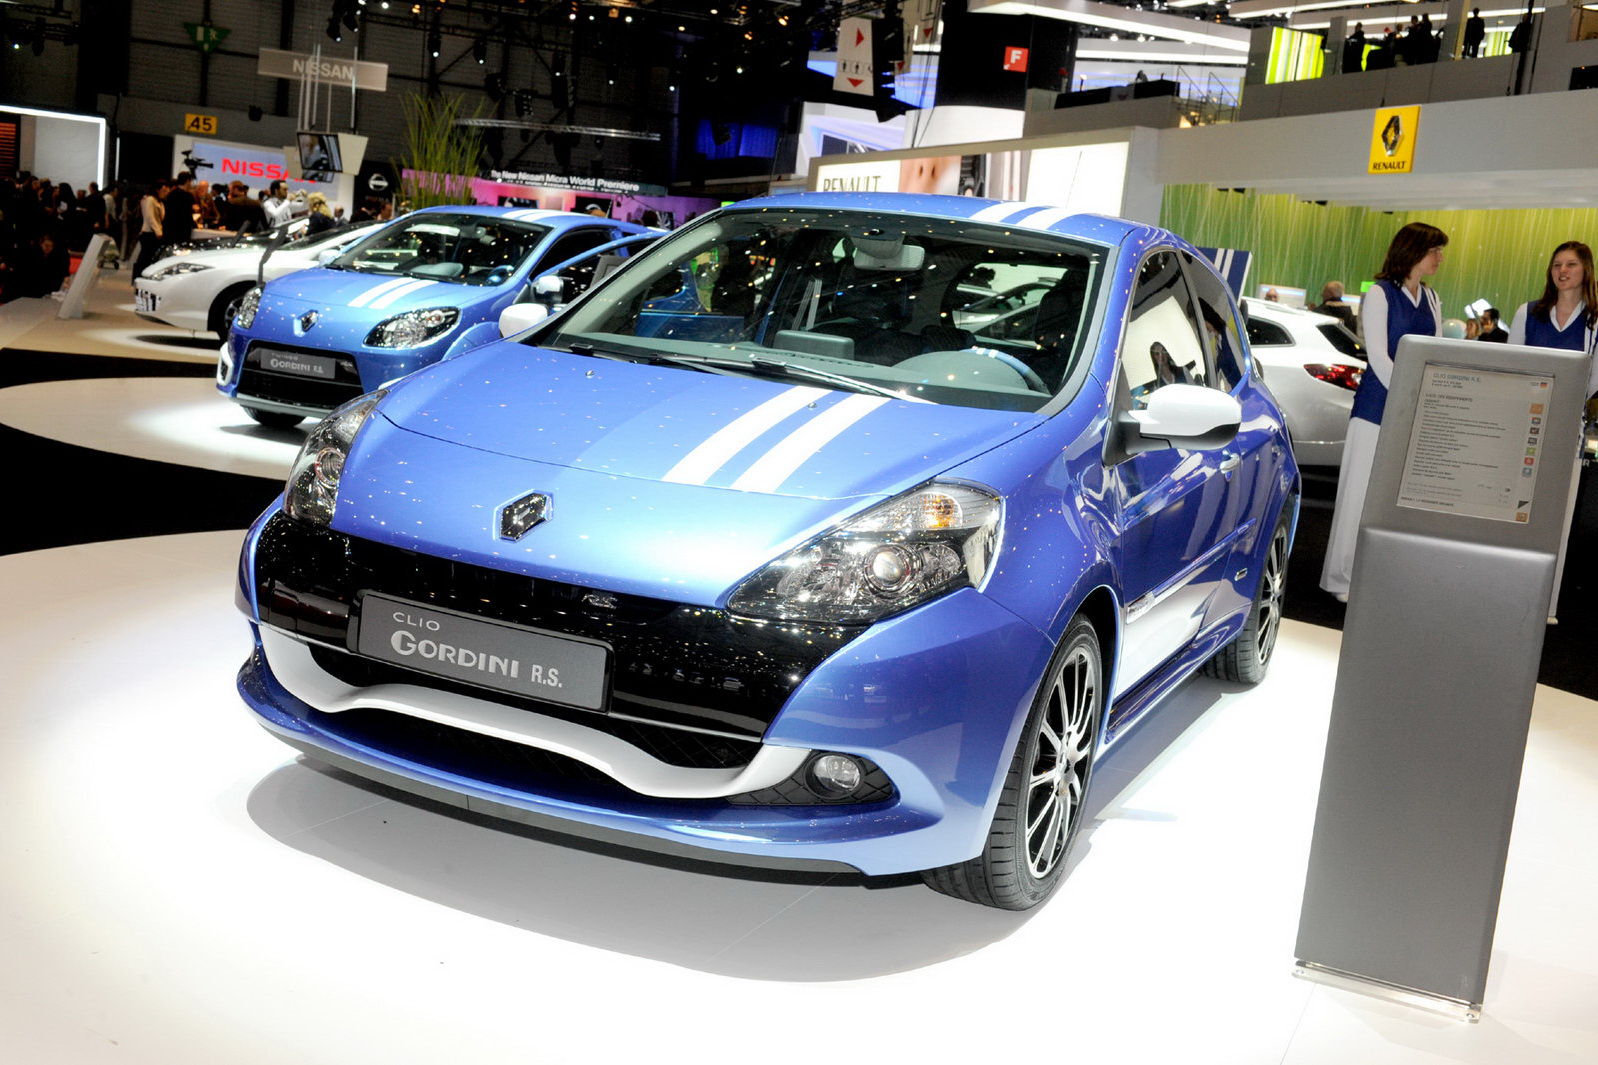 Renault Clio Gordini photo 02